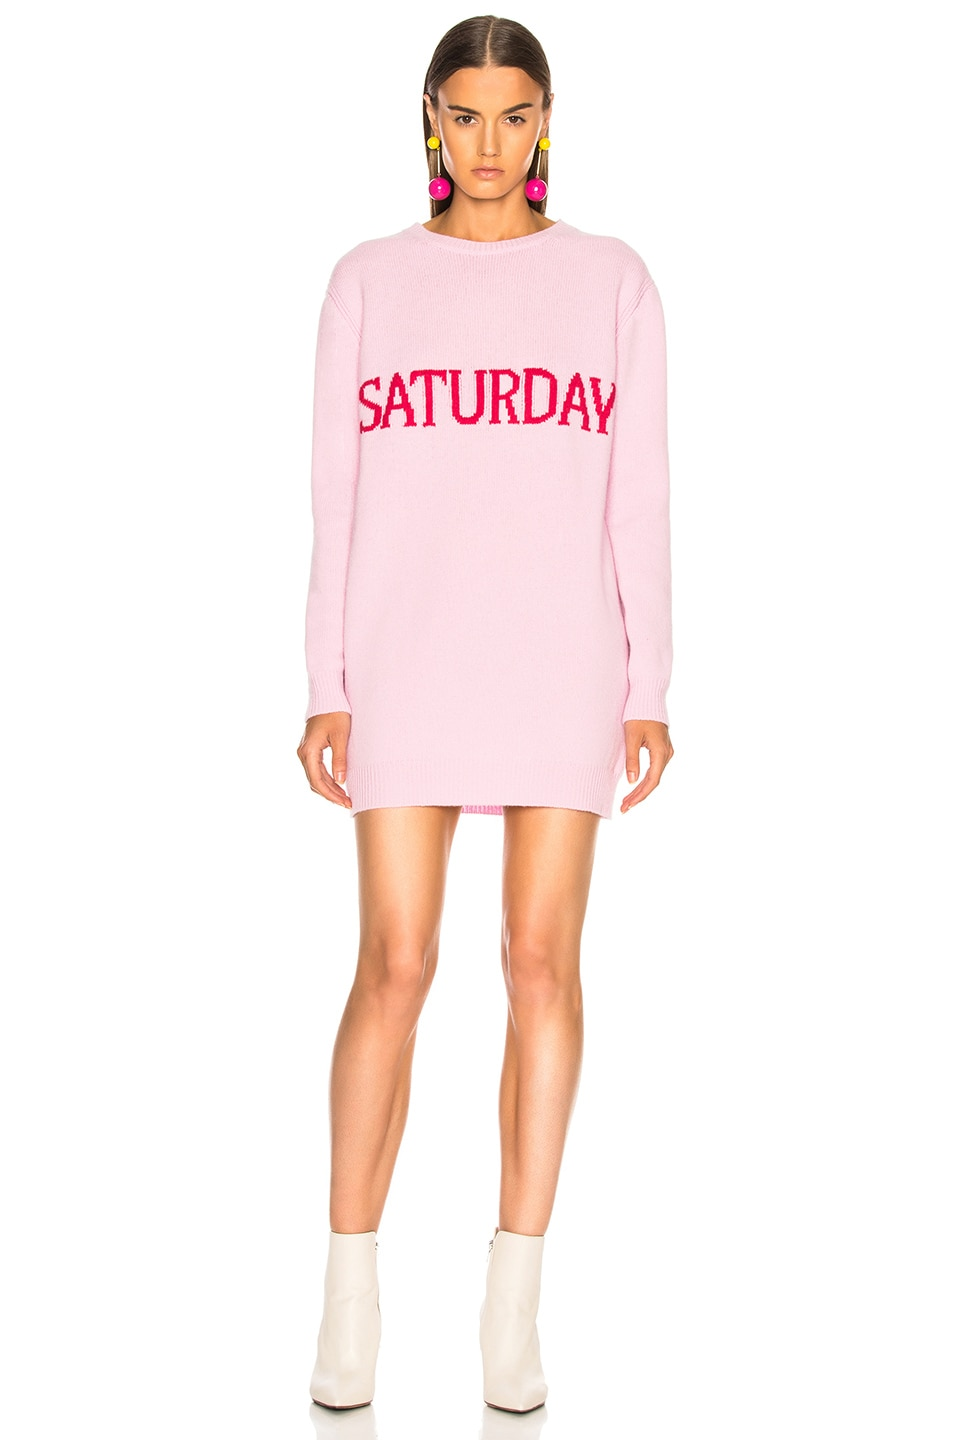 Image 2 of ALBERTA FERRETTI Saturday Crewneck Sweater Dress in Light Pink & Pink